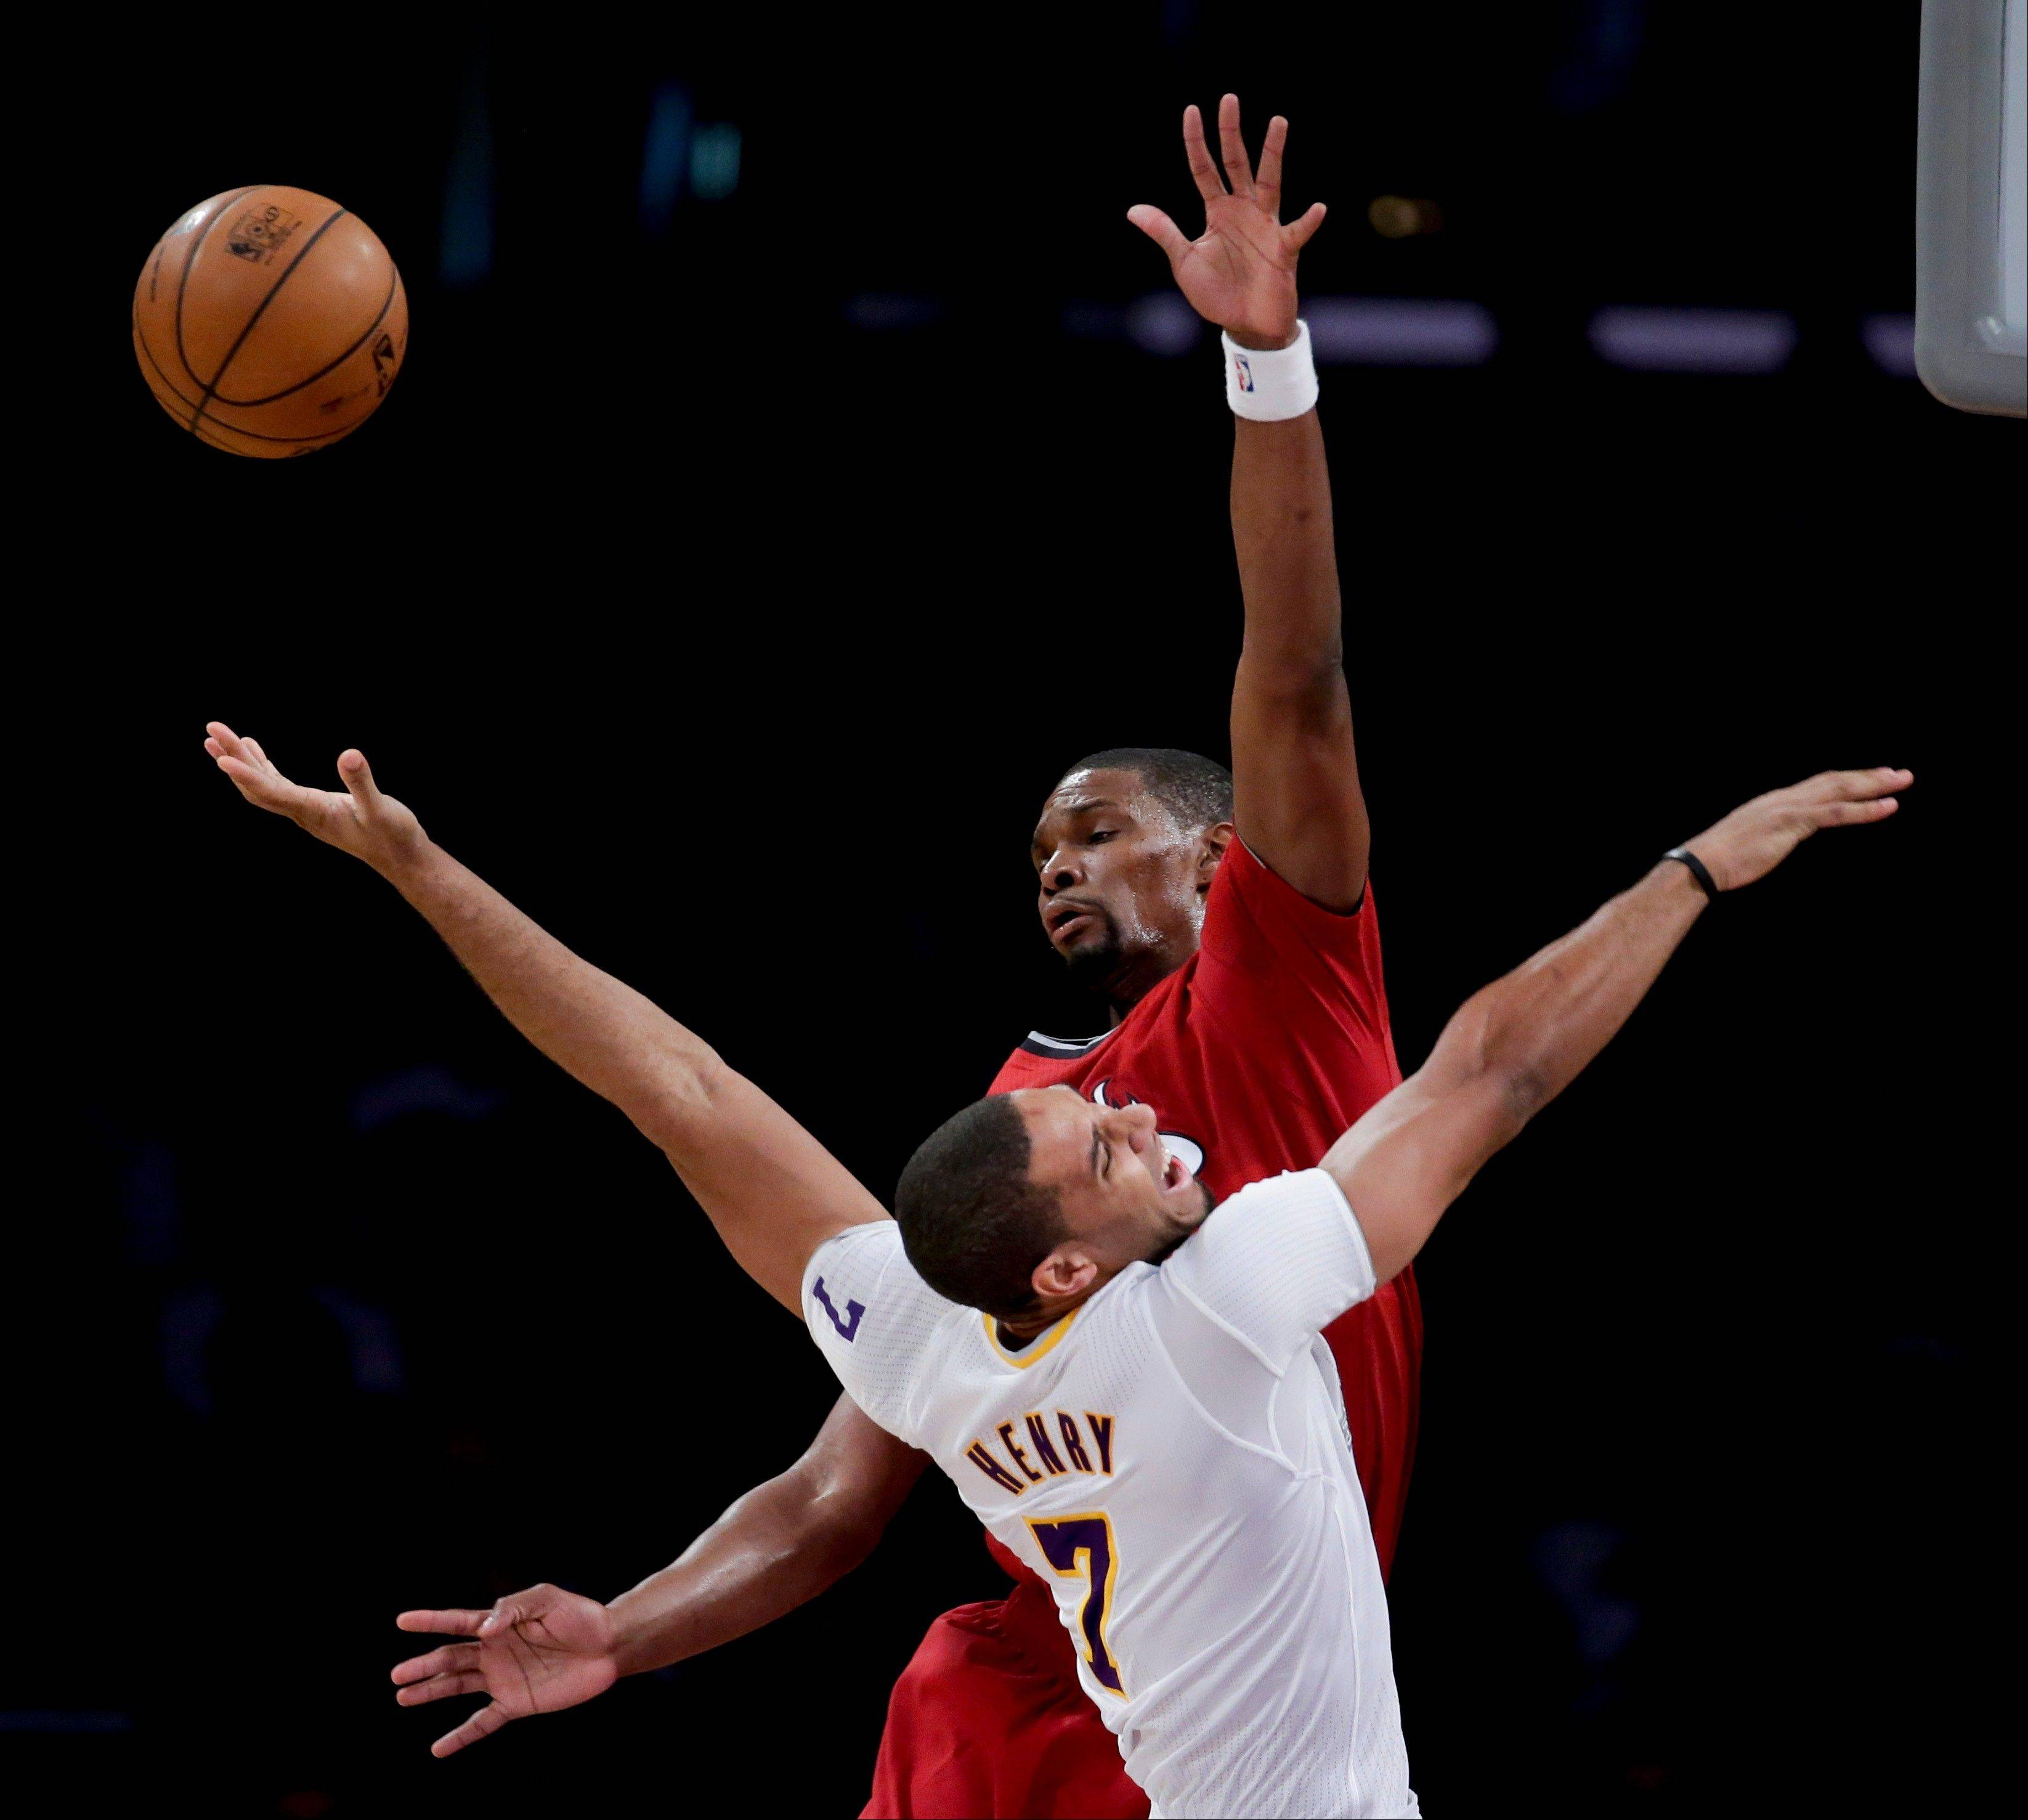 Miami Heat center Chris Bosh, top, blocks a shot by Los Angeles Lakers forward Xavier Henry during the second half of Wednesday's game in Los Angeles.